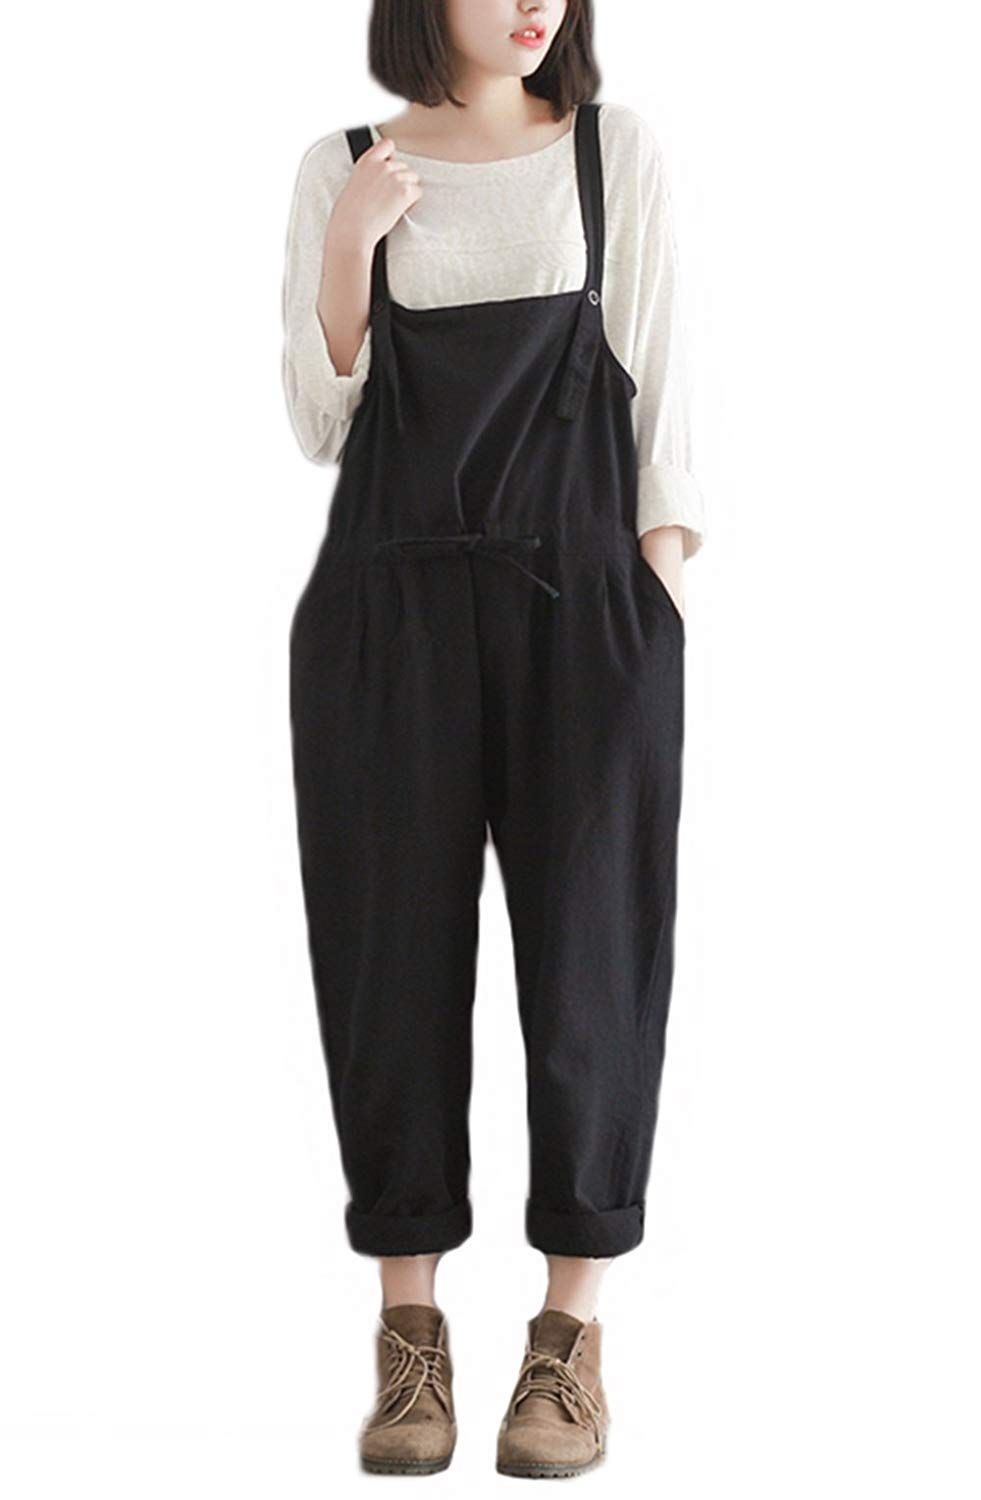 48906125a7 YAELUCKY Christmas Womens Casual Loose Cotton Linen Bib Overalls Pattern  Sleeveless Jumpsuit Pants Plus Size Romper     For more information